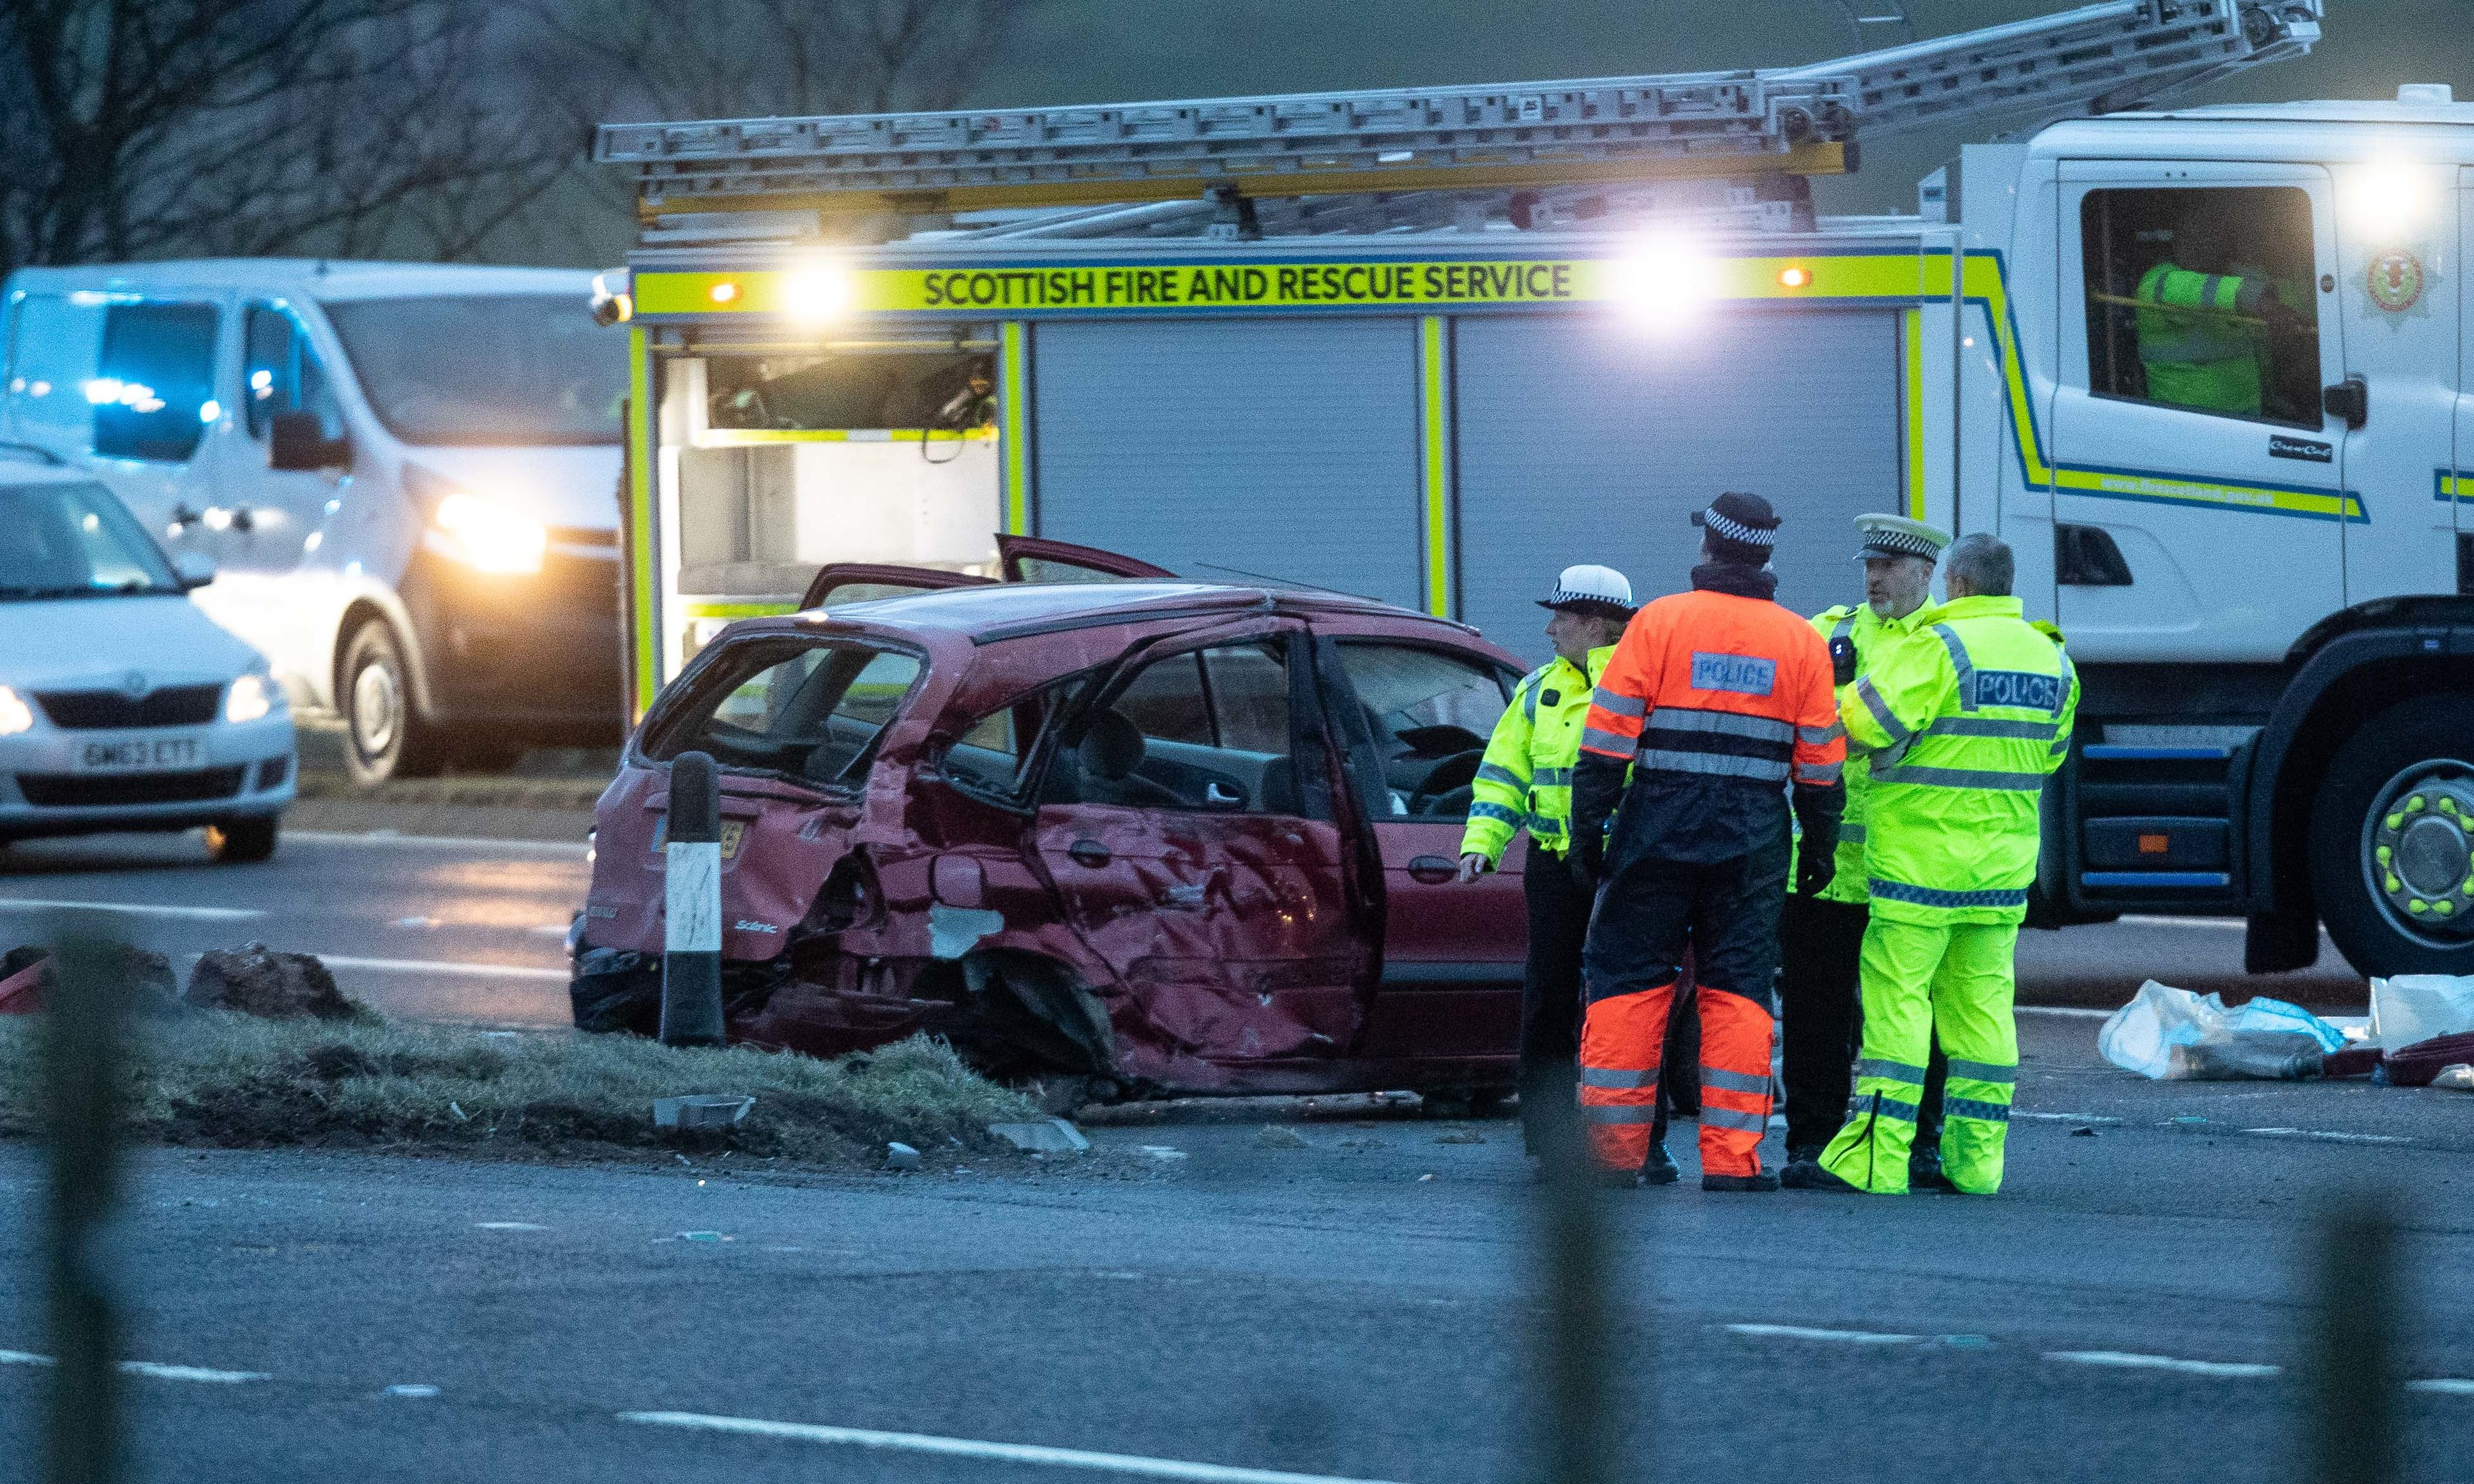 The victims of the fatality were all travelling in a Renault Scenic MPV